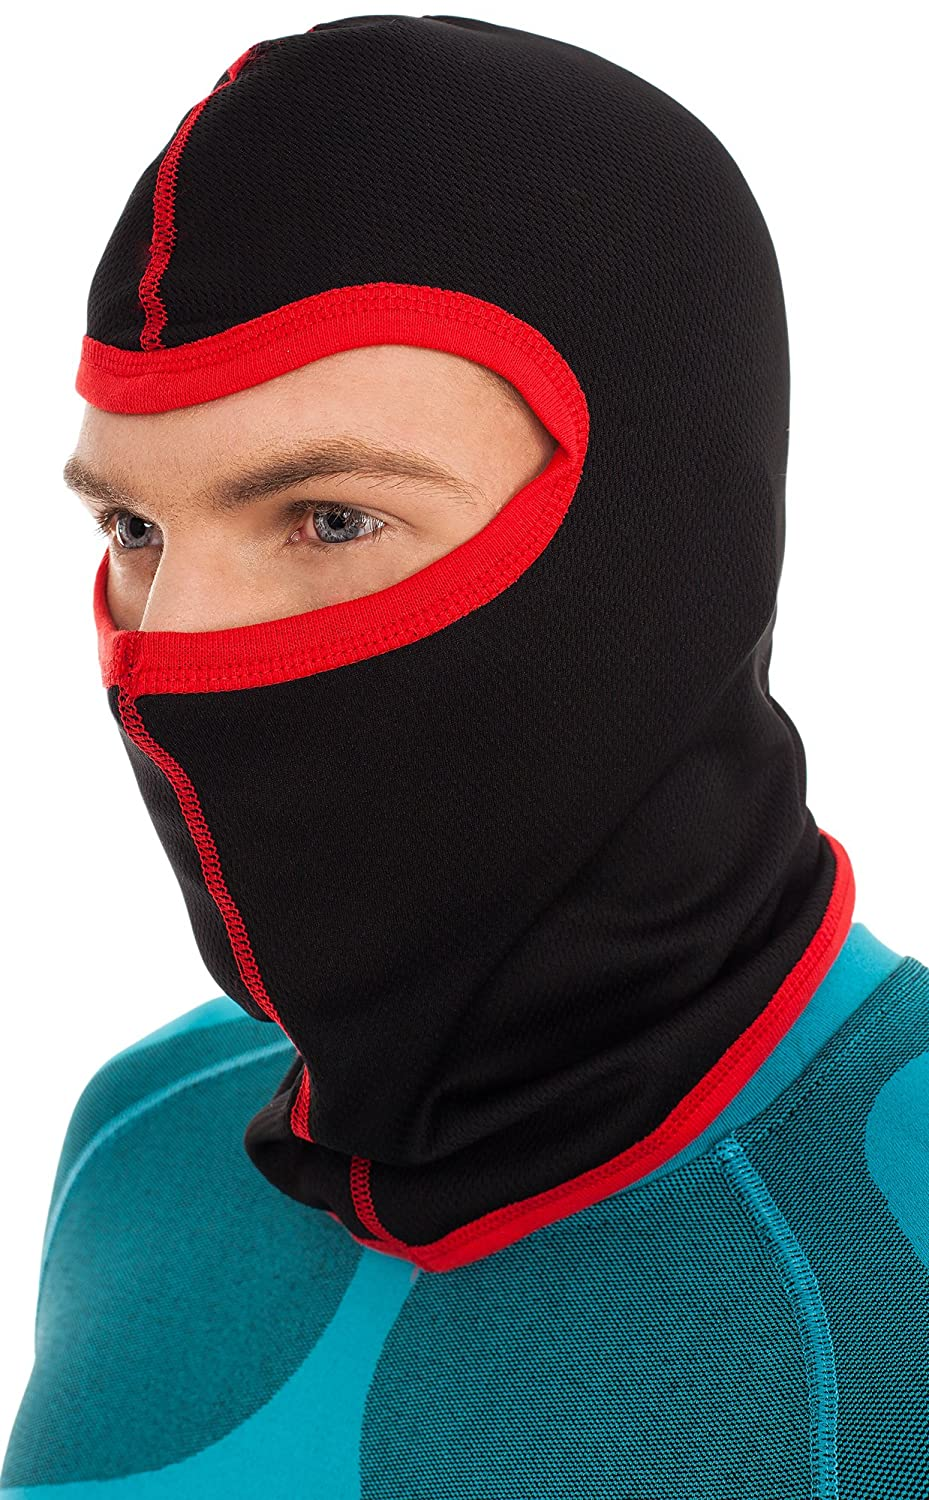 Hisert Balaclava Silverplus Thermoactive Protection HR 18 M/L)